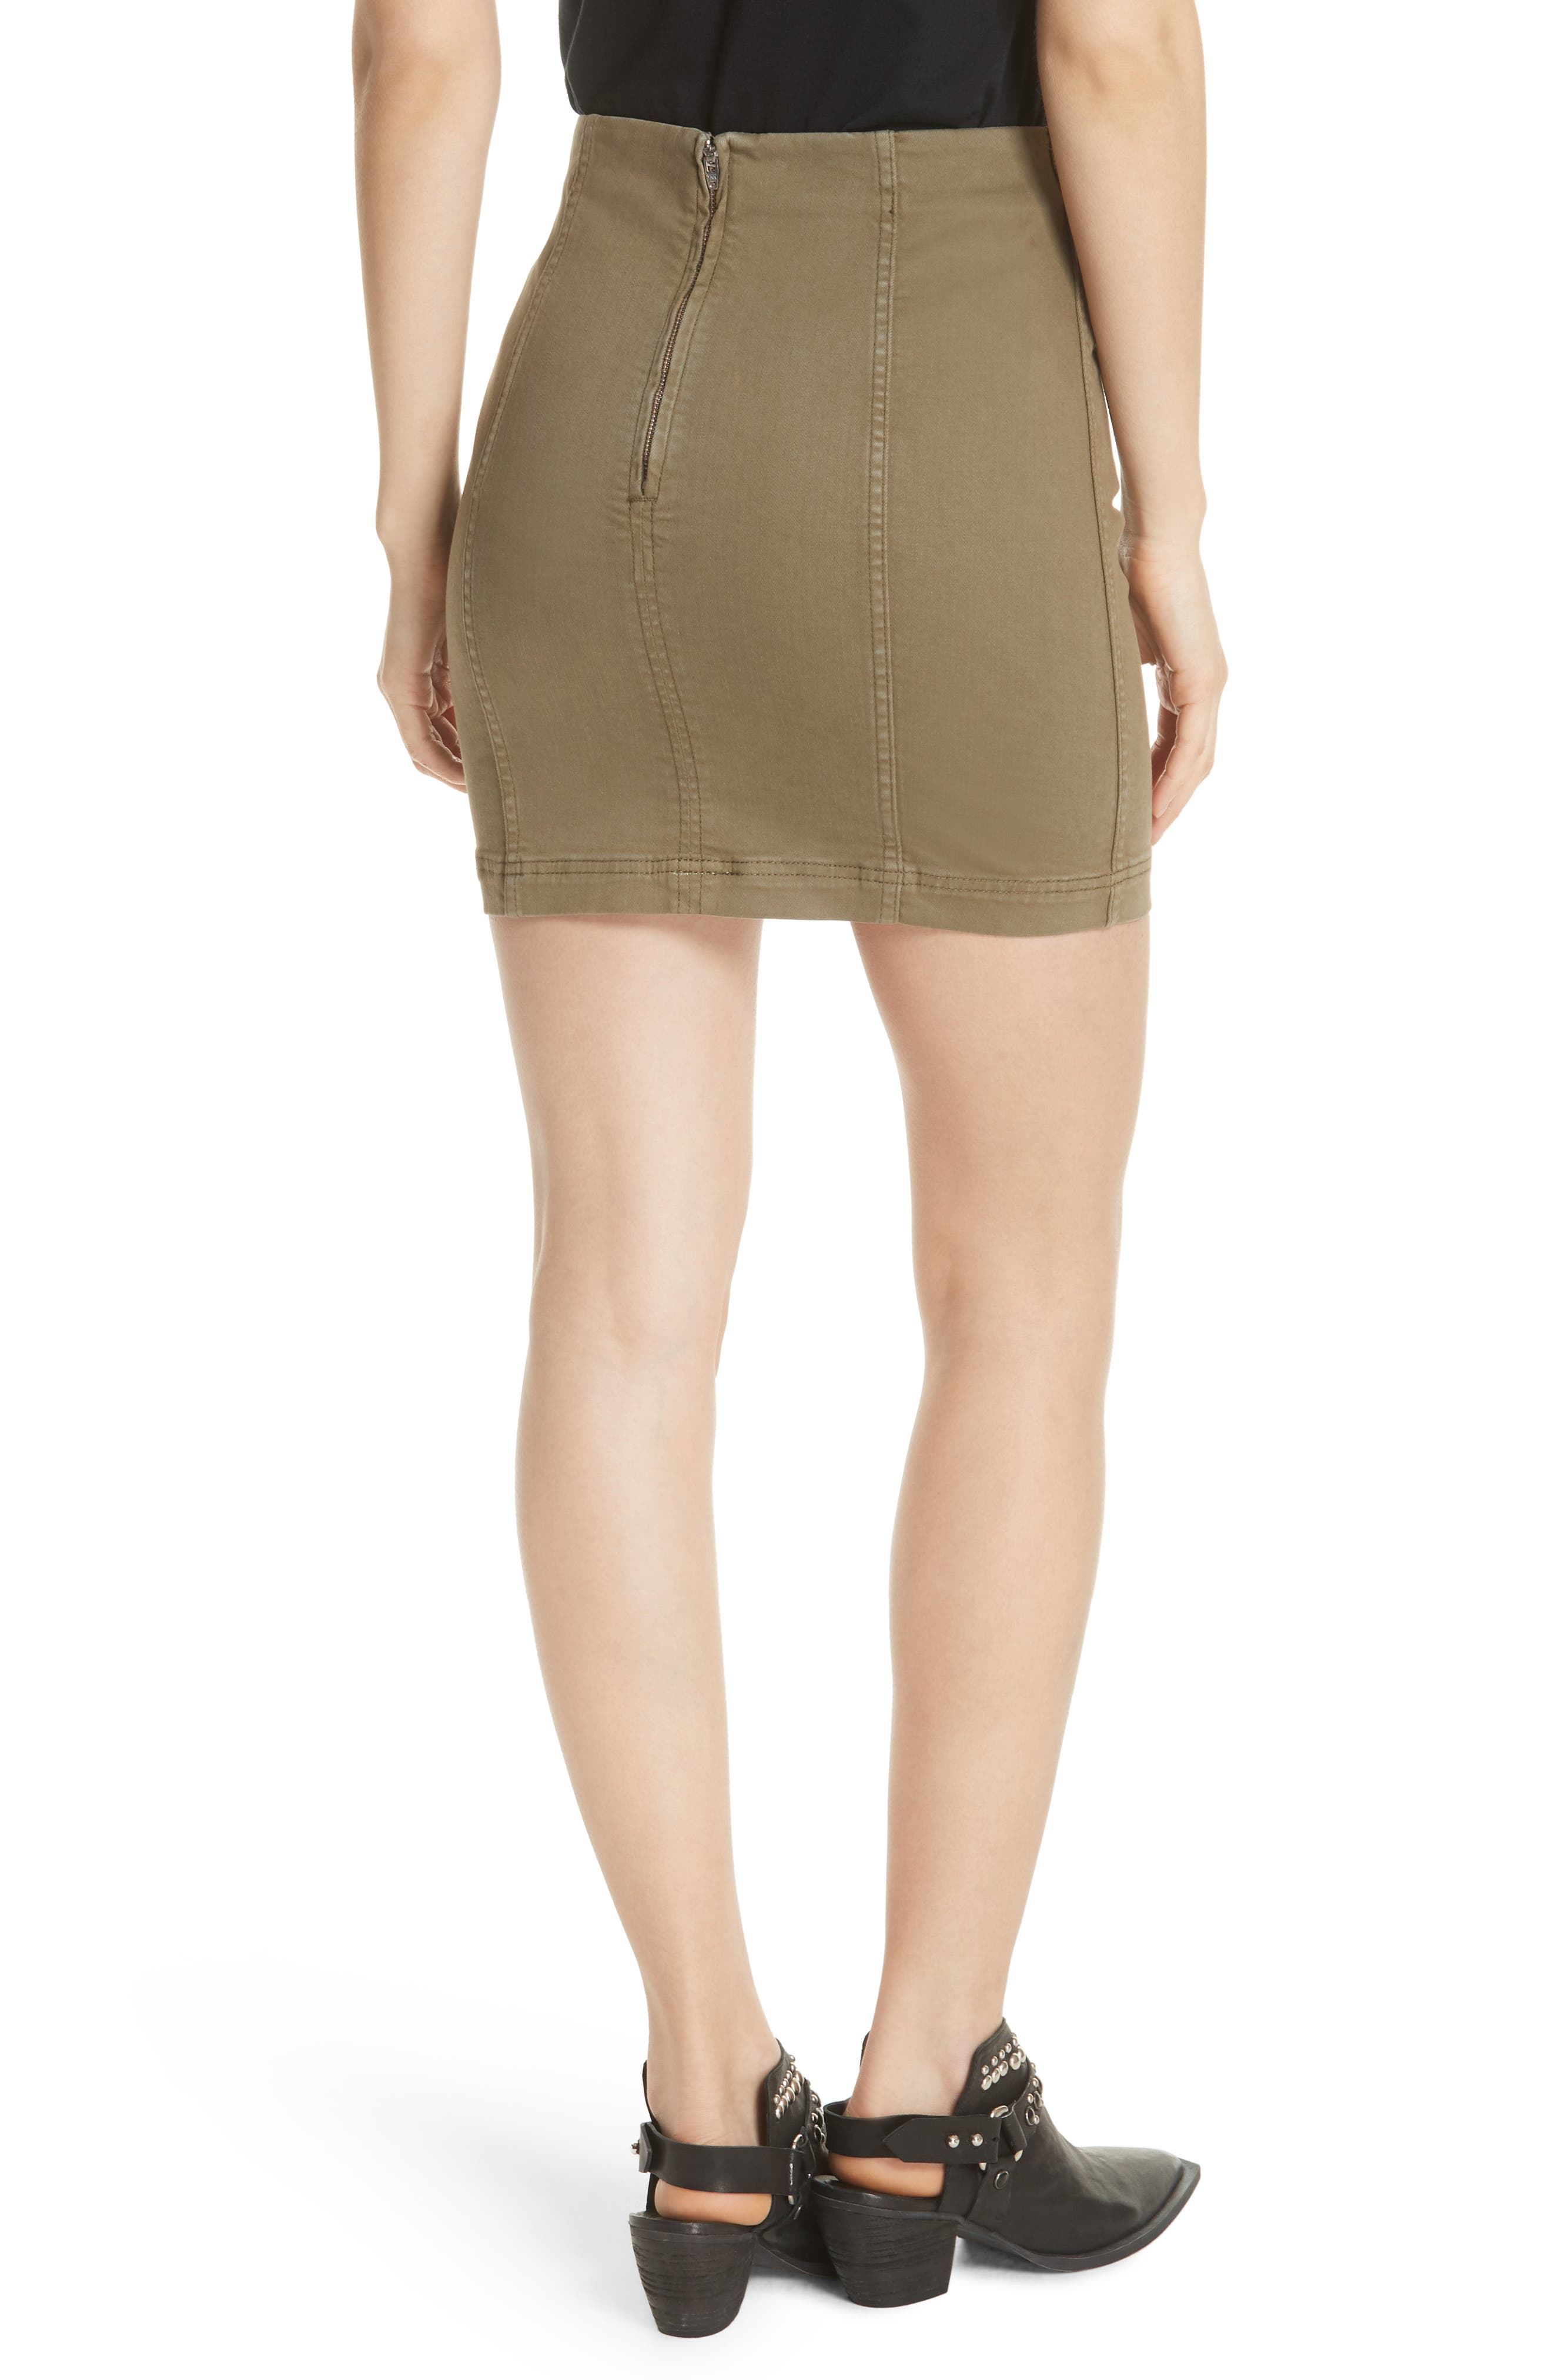 FREE PEOPLE, We the Free by Free People Modern Miniskirt, Alternate thumbnail 2, color, ARMY